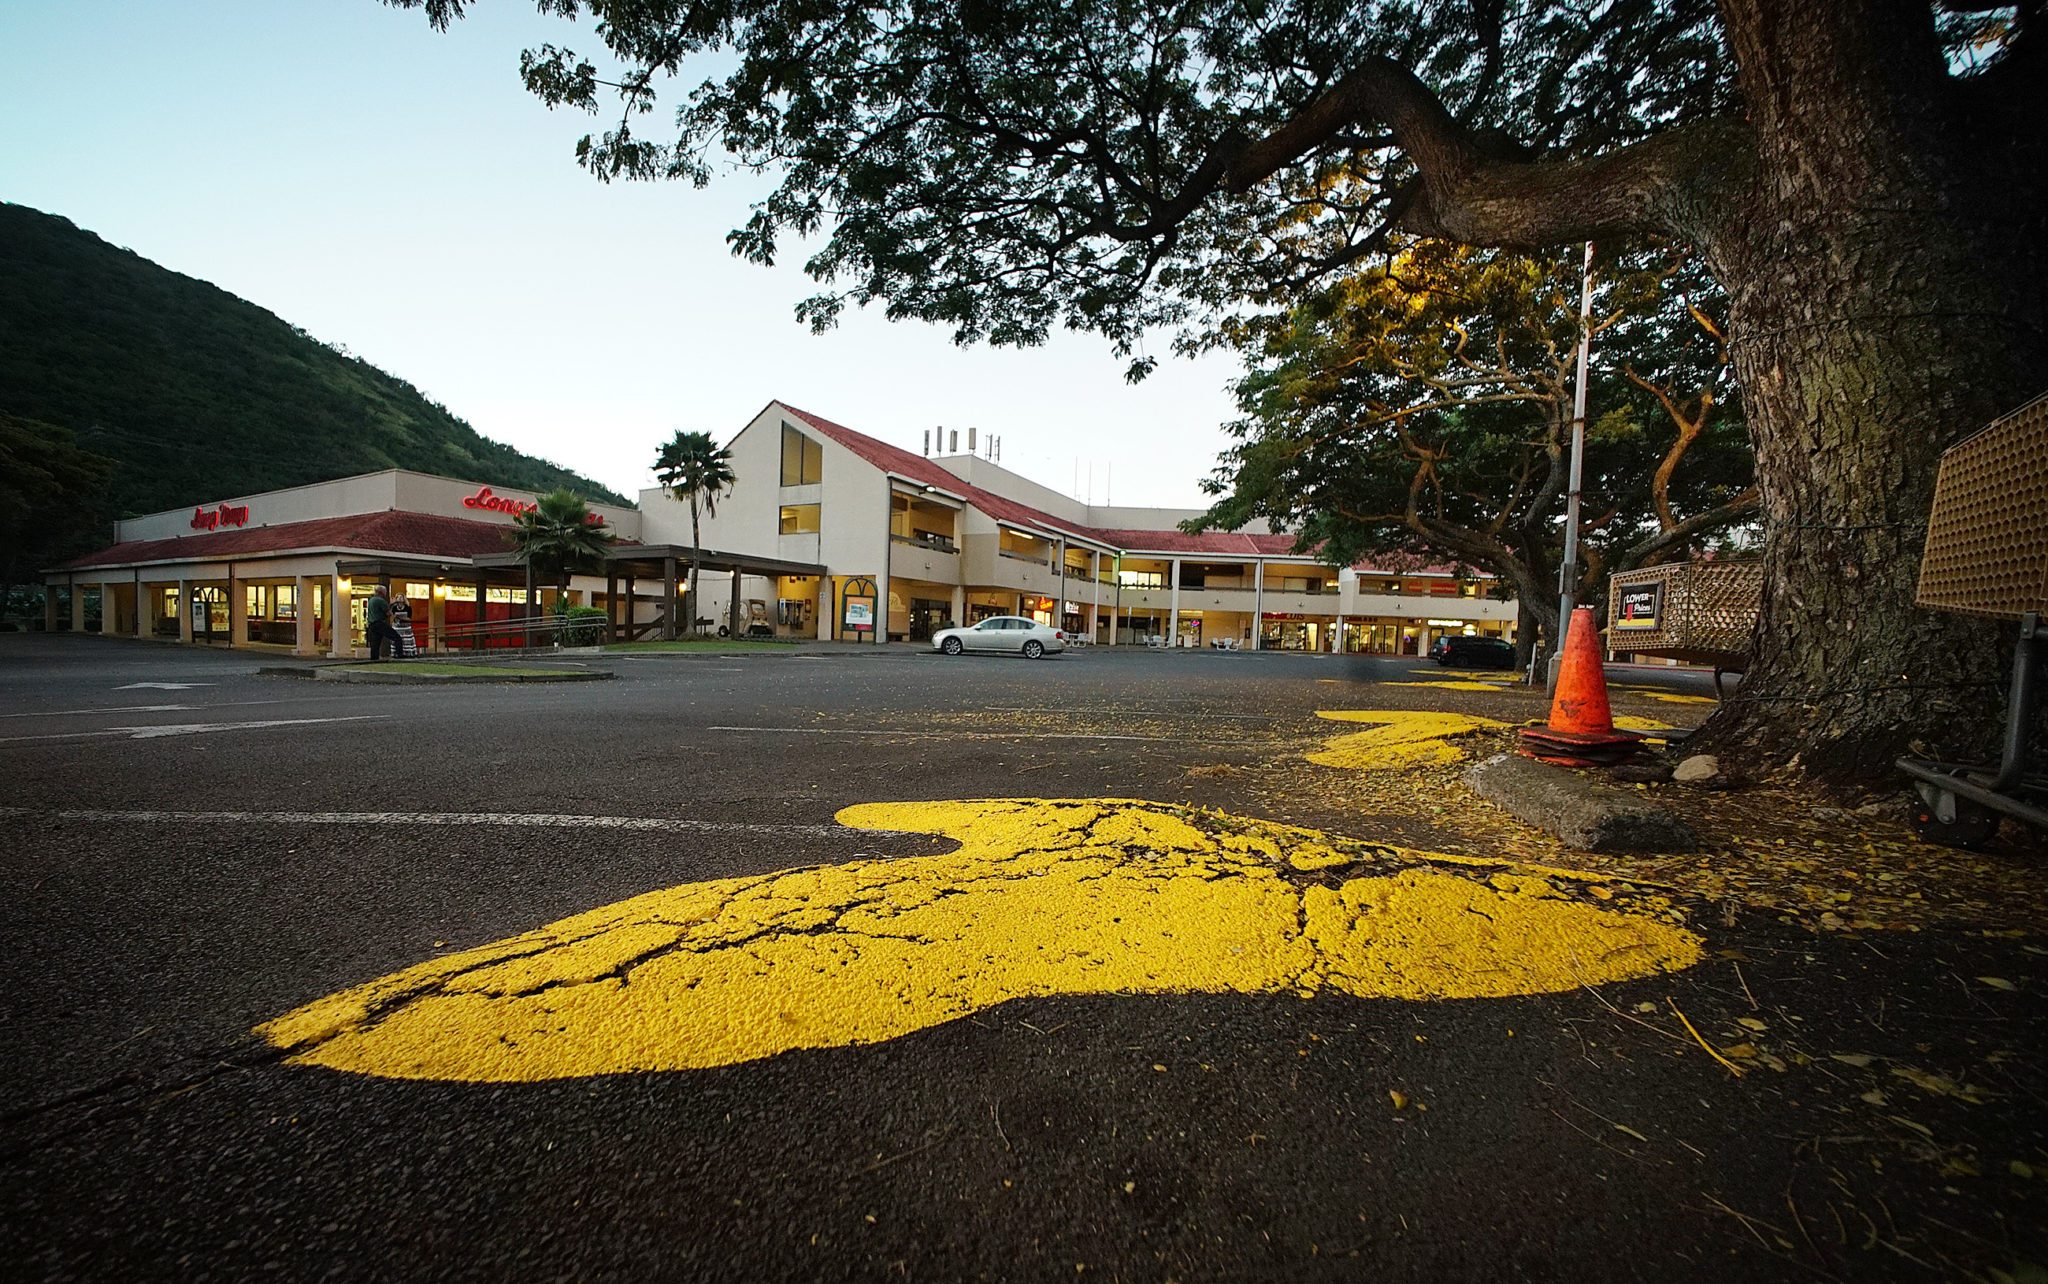 A&B new owners of Manoa Marketplace had the Monkeypod tree roots protuding the asphalt painted yellow.